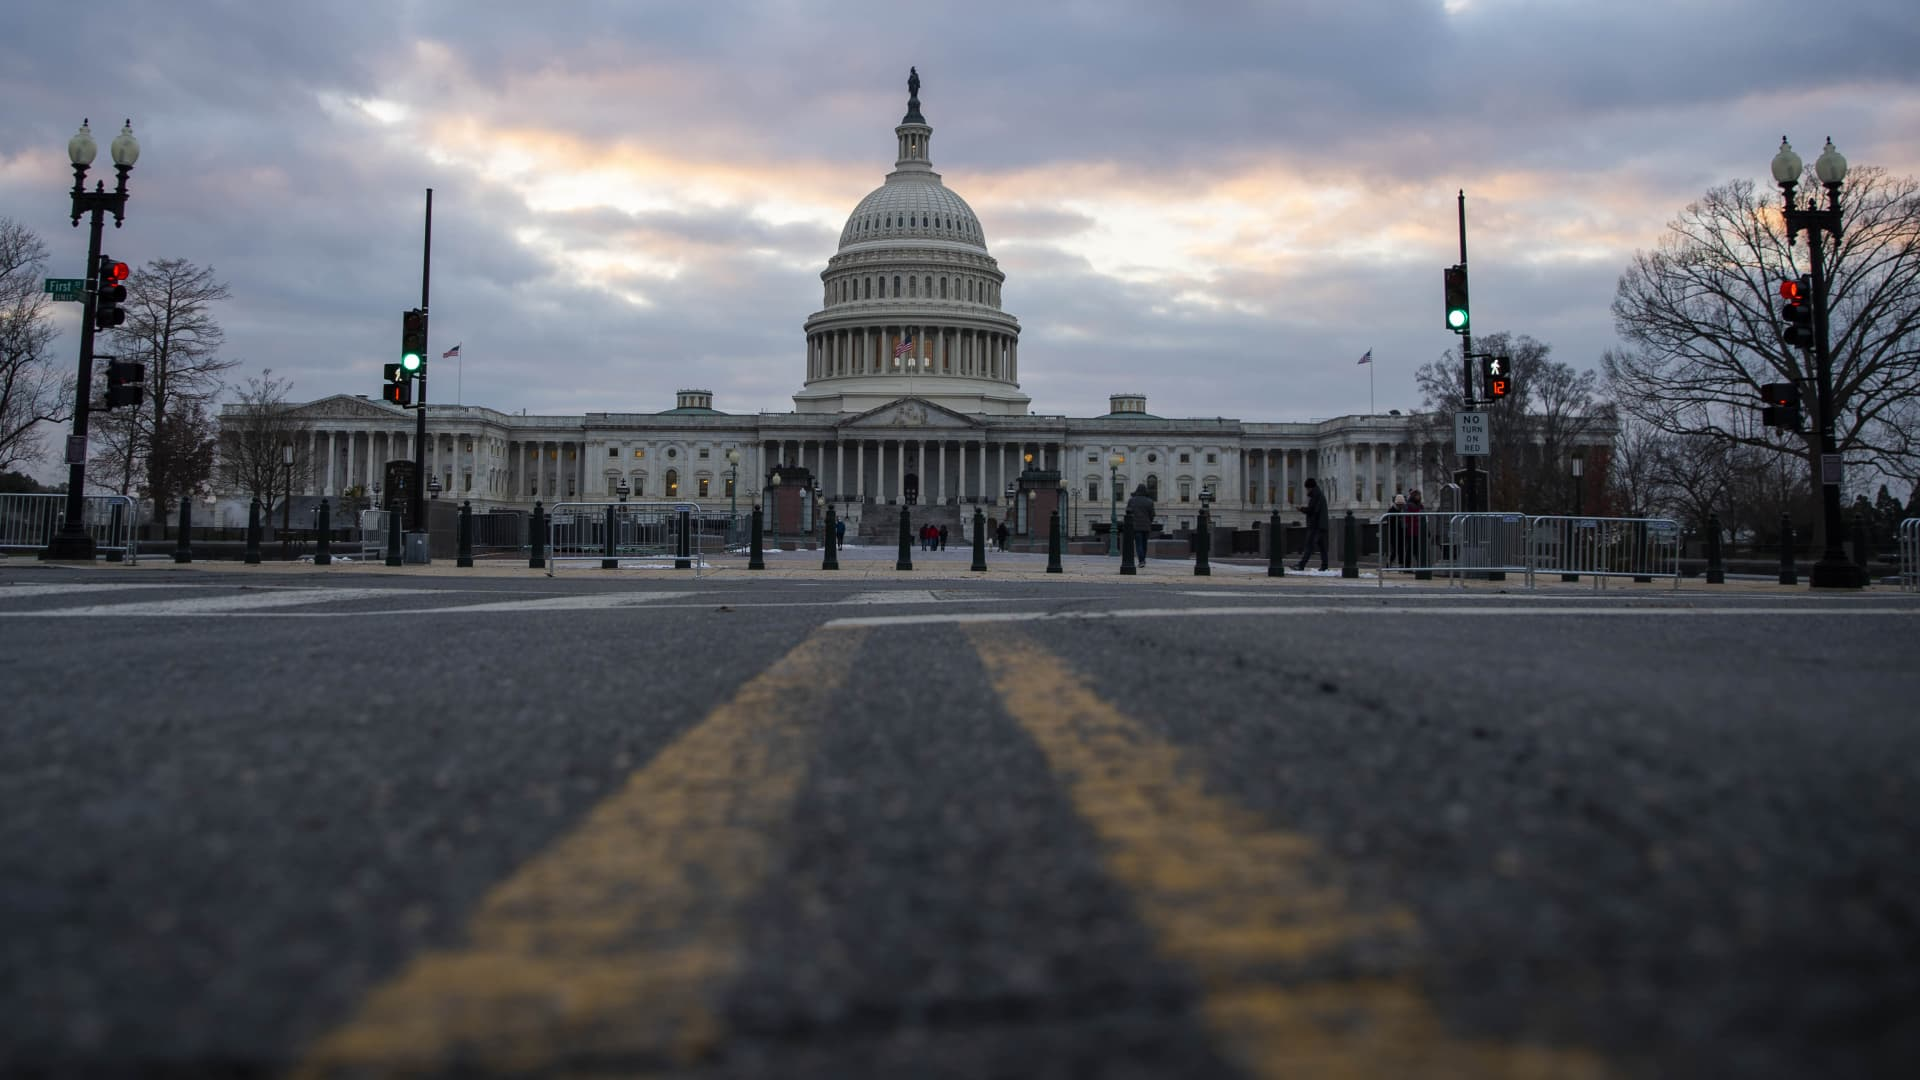 The U.S. Capitol in Washington, D.C., U.S., on Friday, Dec. 18, 2020. Congress is facing down a midnight deadline to pass a pandemic relief measure as part of a massive government spending bill or rush through another stopgap to keep the government funded through at least the weekend while talks continue. Photographer: Sarah Silbiger/Bloomberg via Getty Images